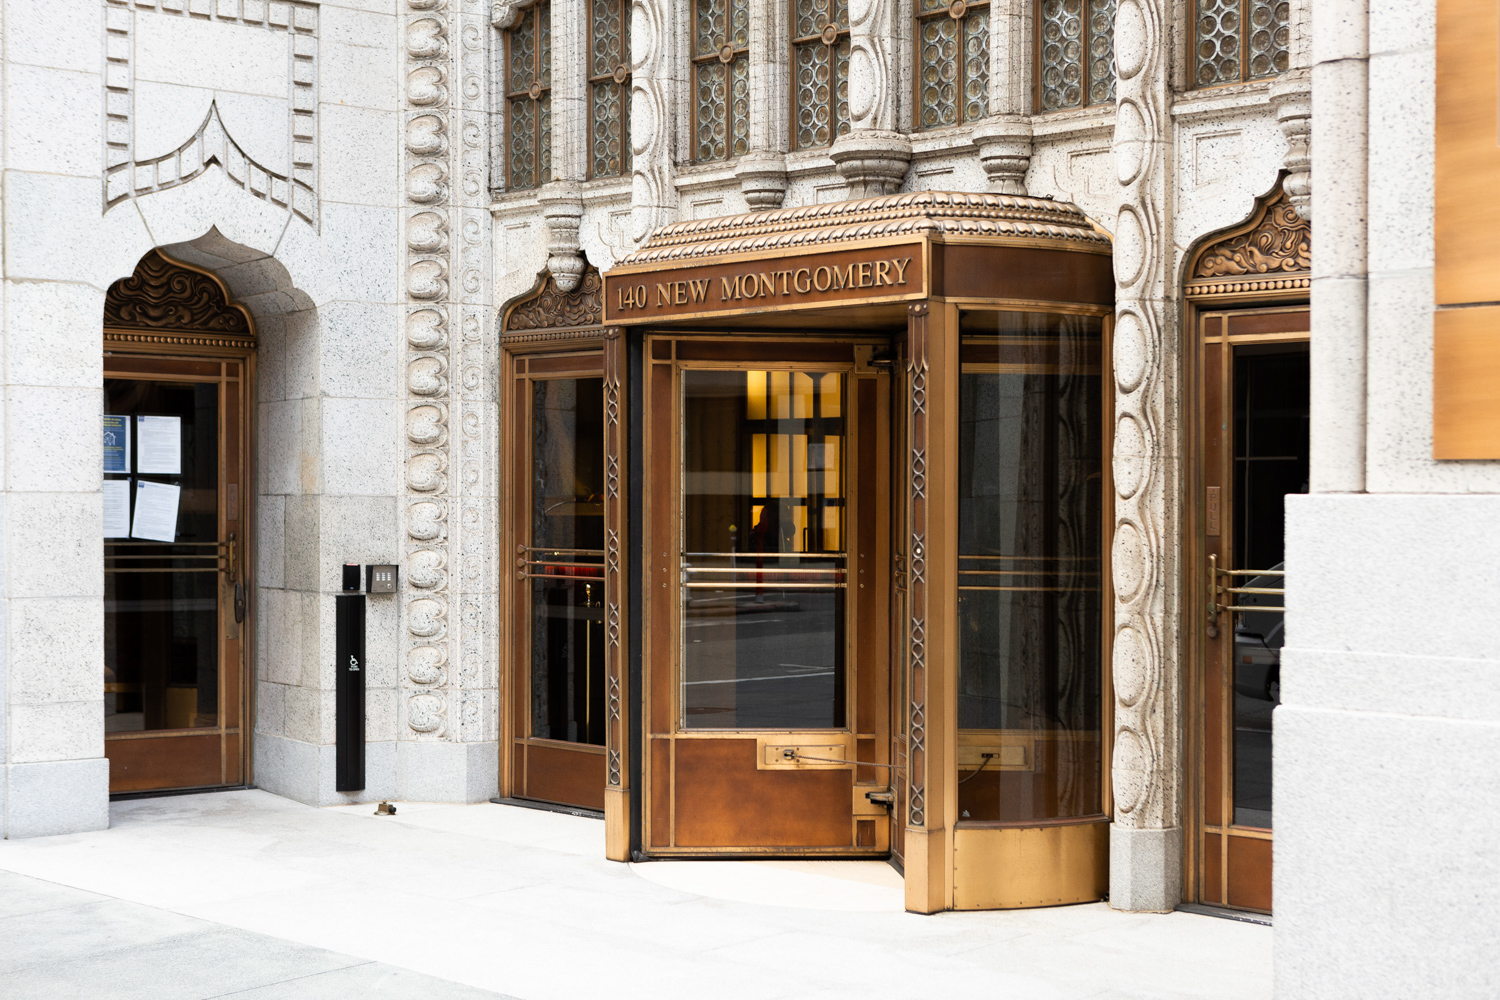 140 New Montgomery Street lobby entrance, image by Andrew Campbell Nelson